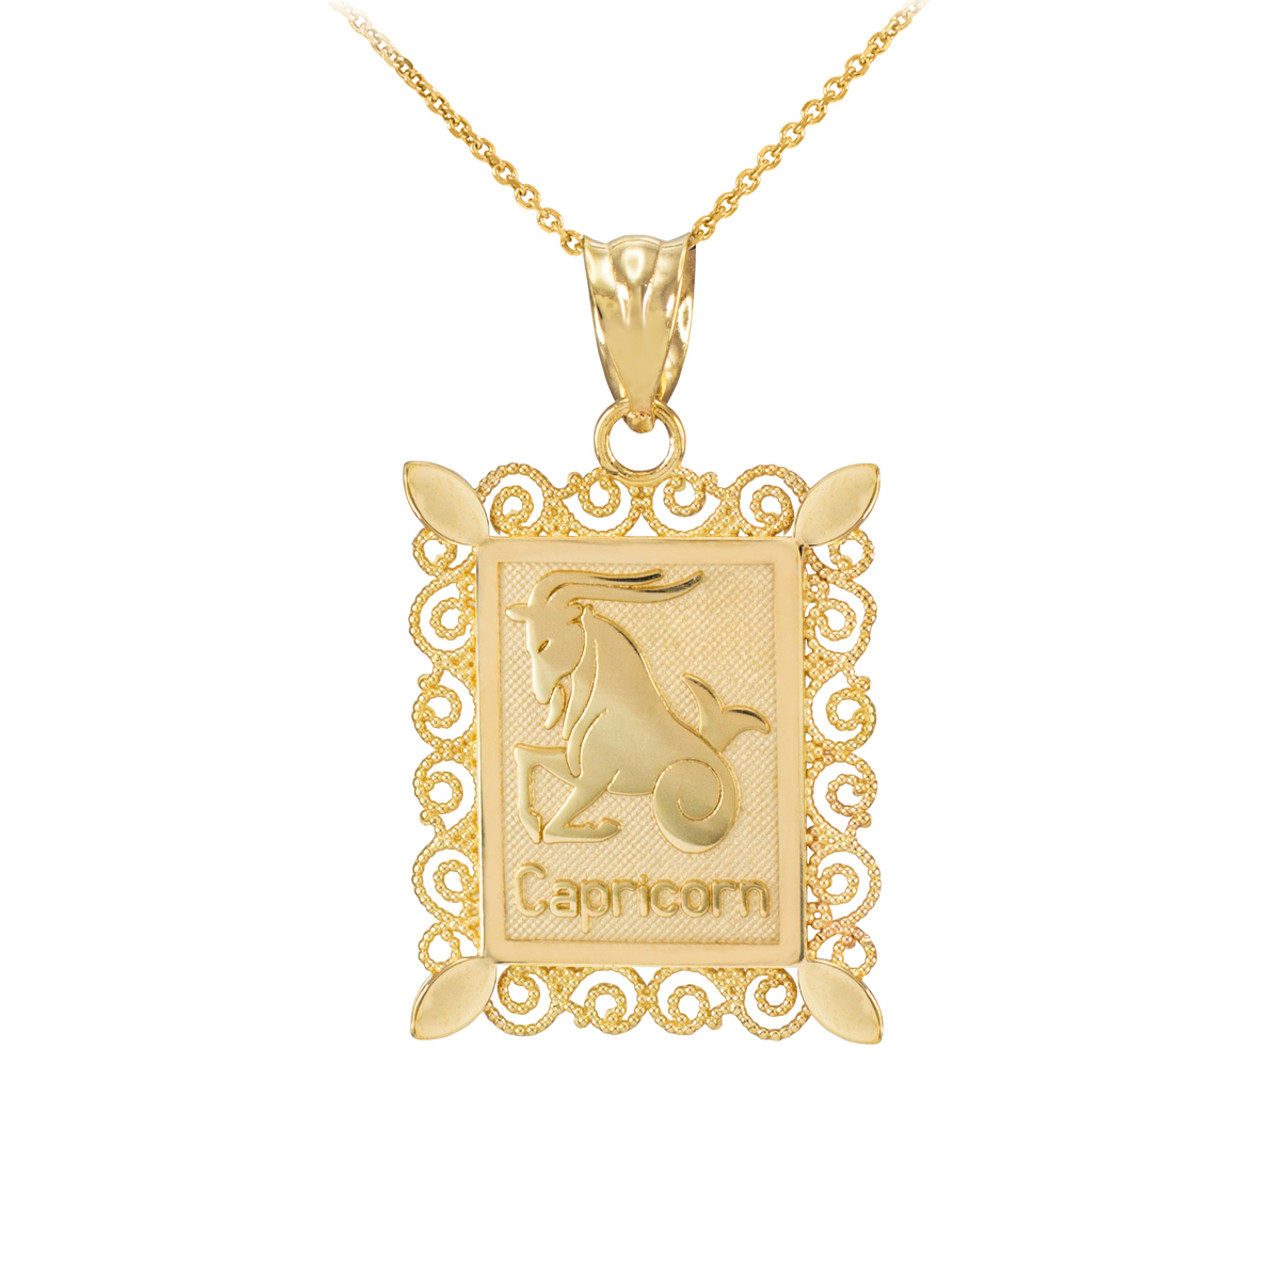 Gold capricorn zodiac sign filigree square pendant necklace mozeypictures Image collections